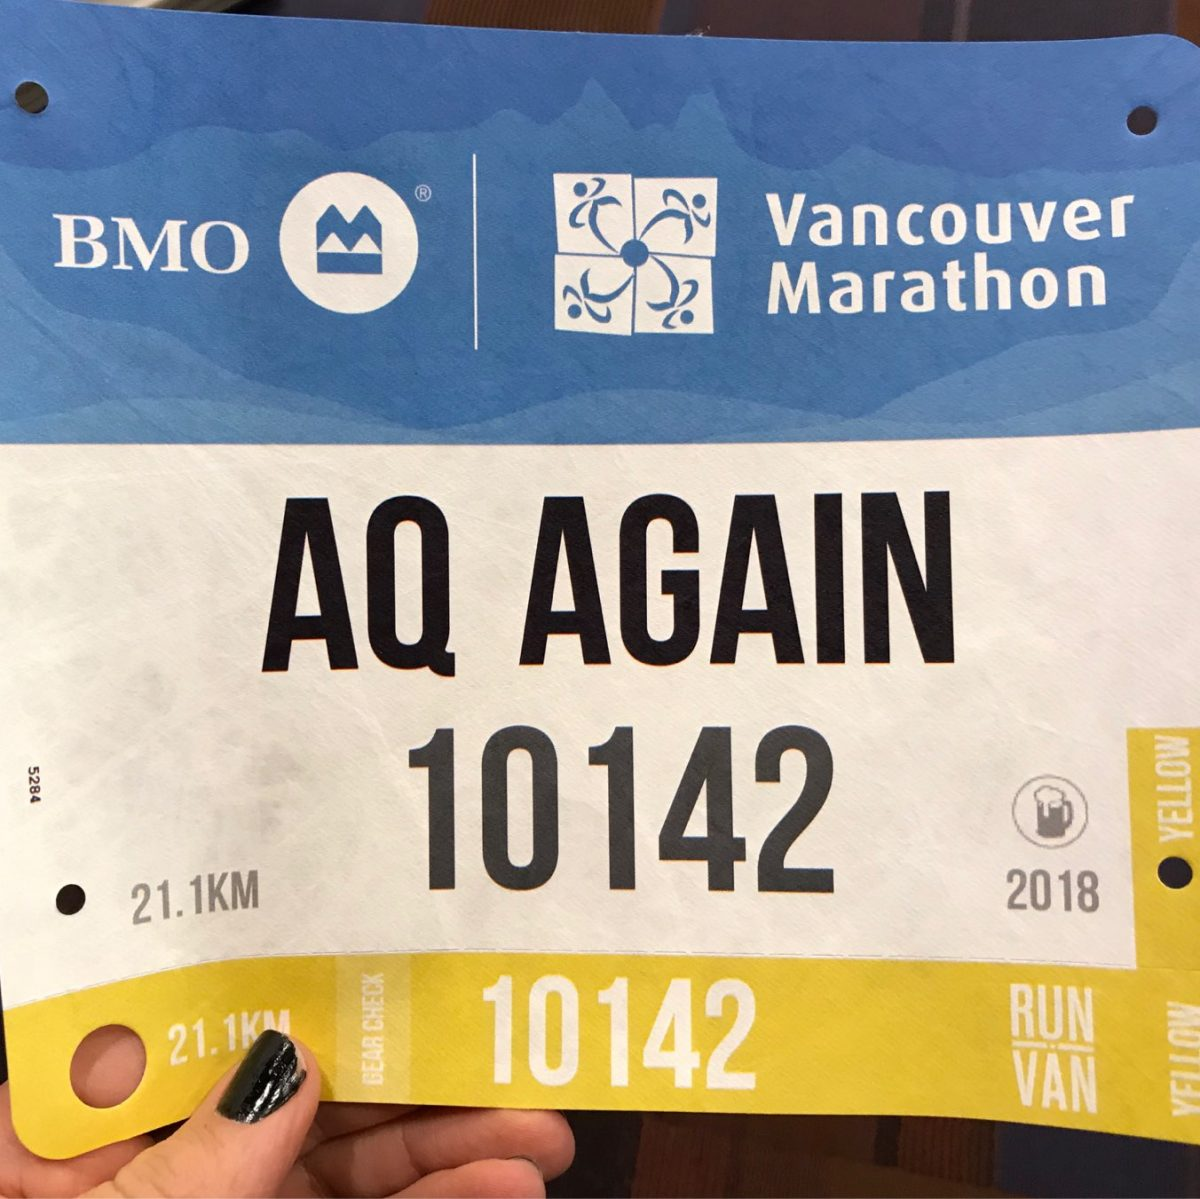 A blue, white and yellow race bib with the name